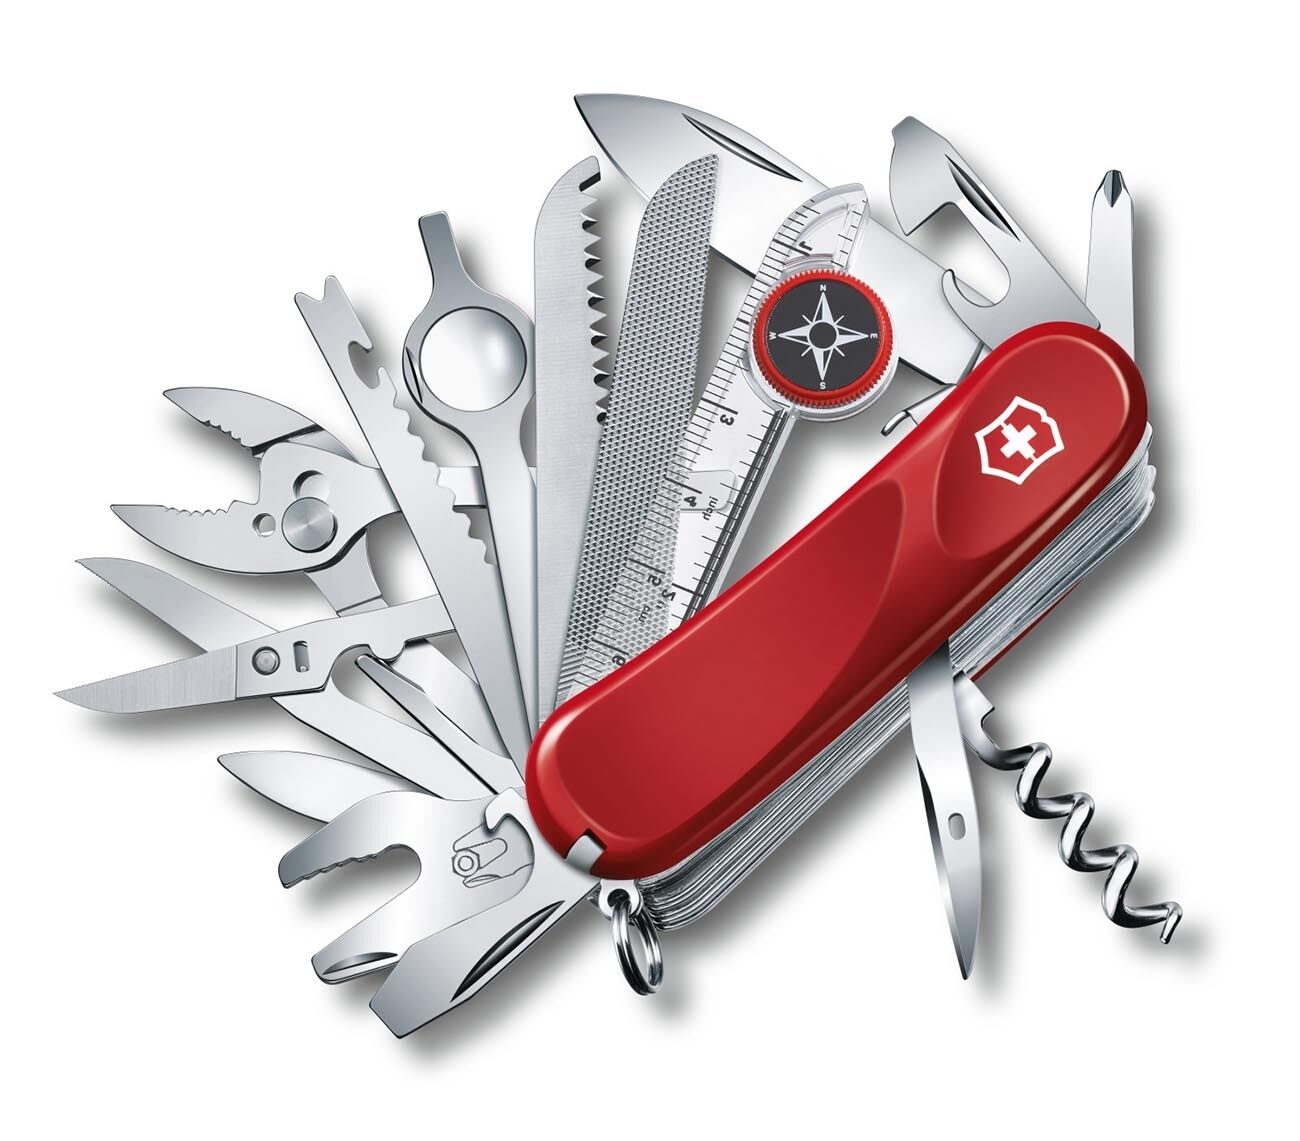 Victorinox Swiss Army Knife, Evolution S54 Tool Chest   2.5393.SEUS2, New In Box